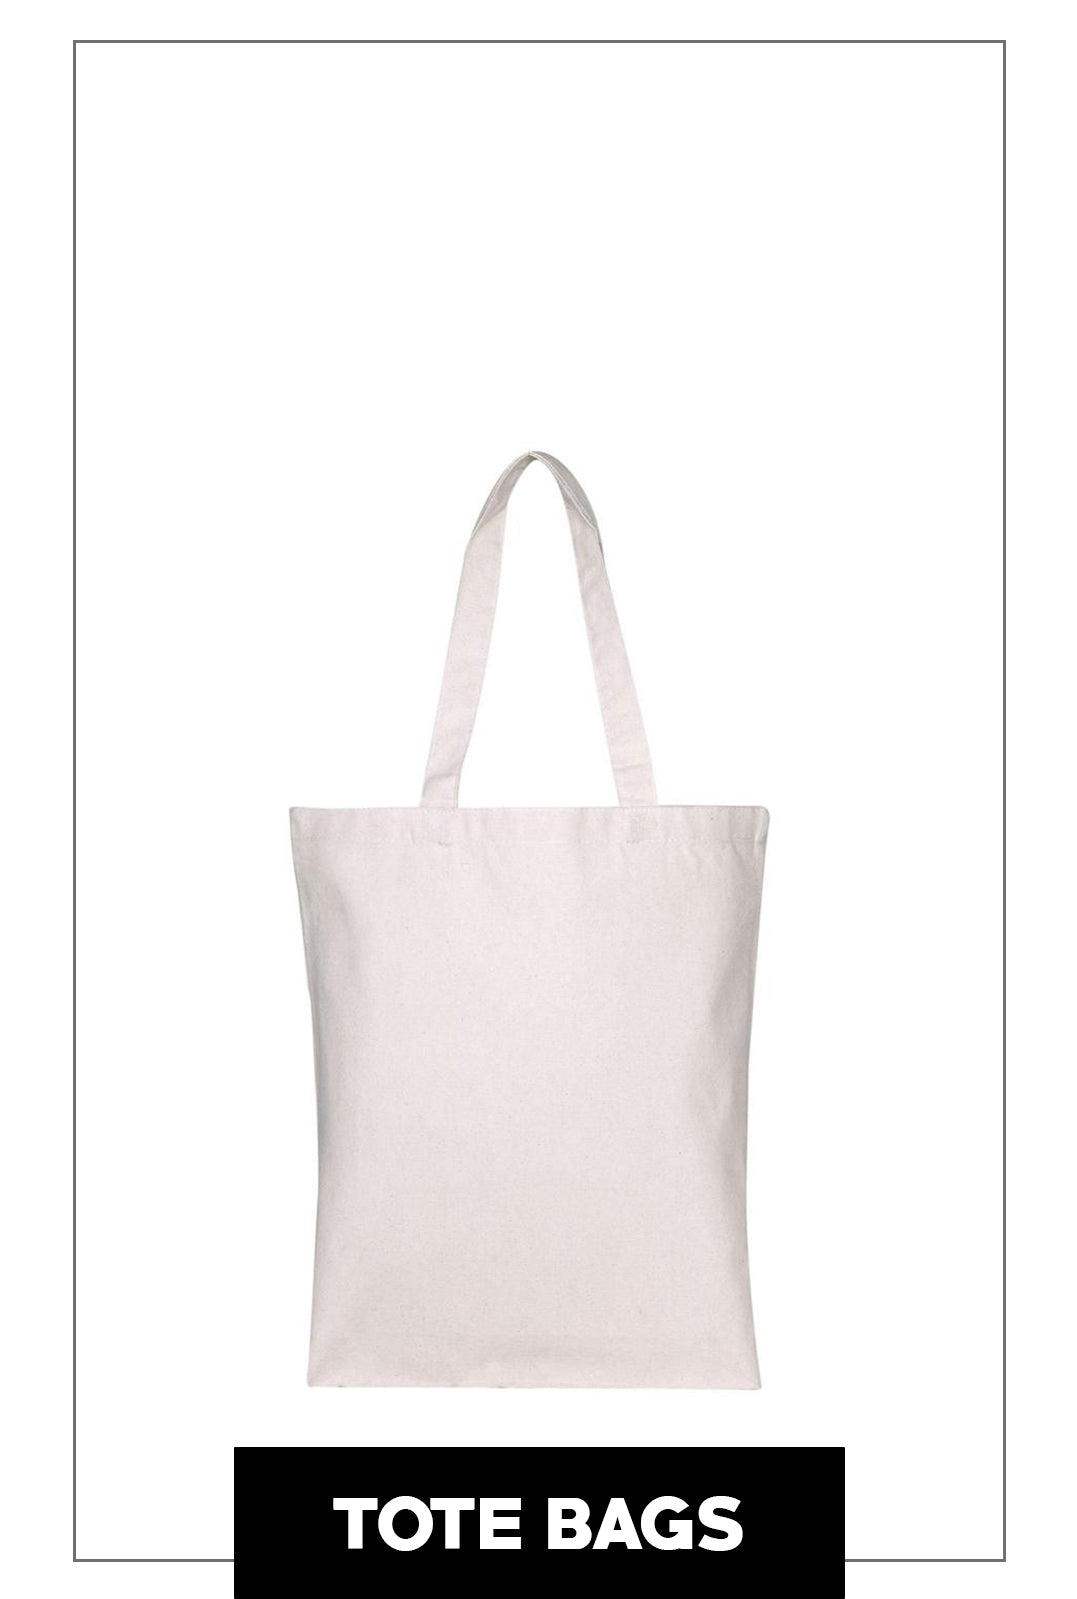 https://www.smartprintsink.com/collections/tote-bags